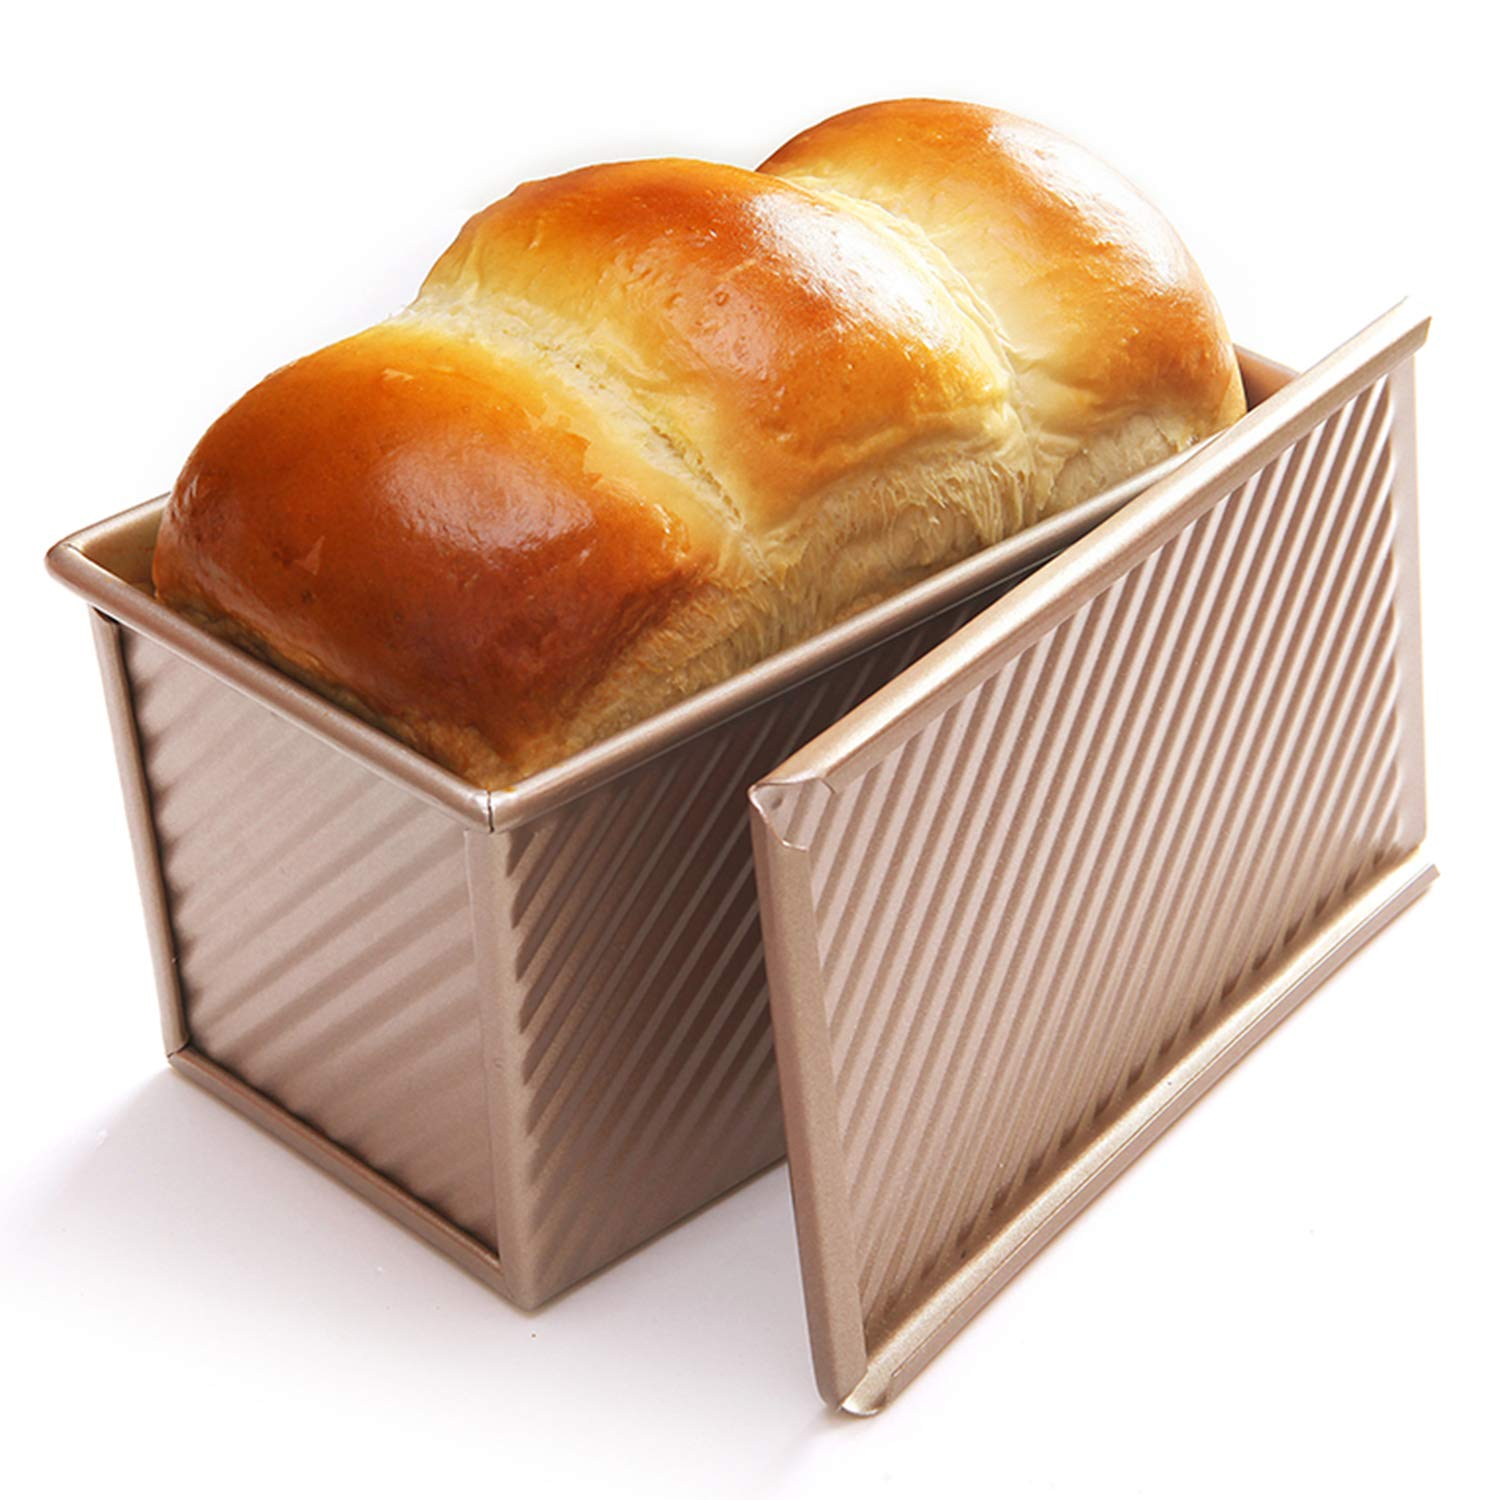 CHEFMADE Loaf Pan with Lid, Non-Stick Bakeware Aluminium Alloy Bread Toast Mold with Cover Bread Pan for Baking Bread Pan Bread Tin for Homemade Cakes, Breads and Meatloaf